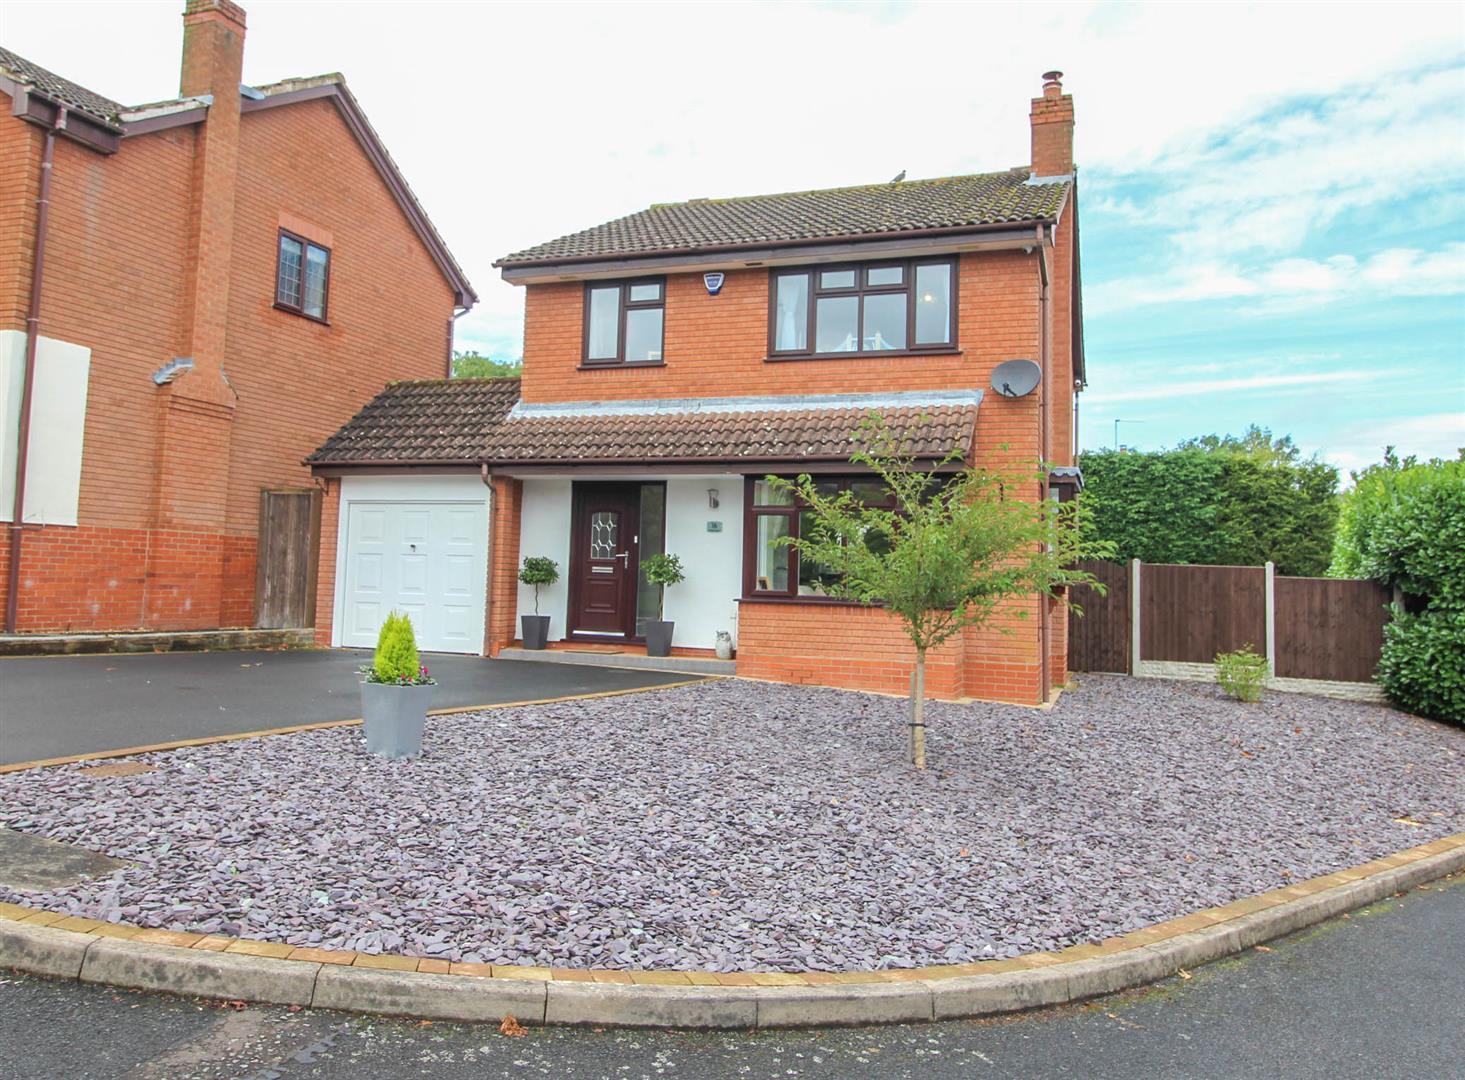 4 Bedrooms Detached House for sale in Shirehampton Close, Webheath, Redditch